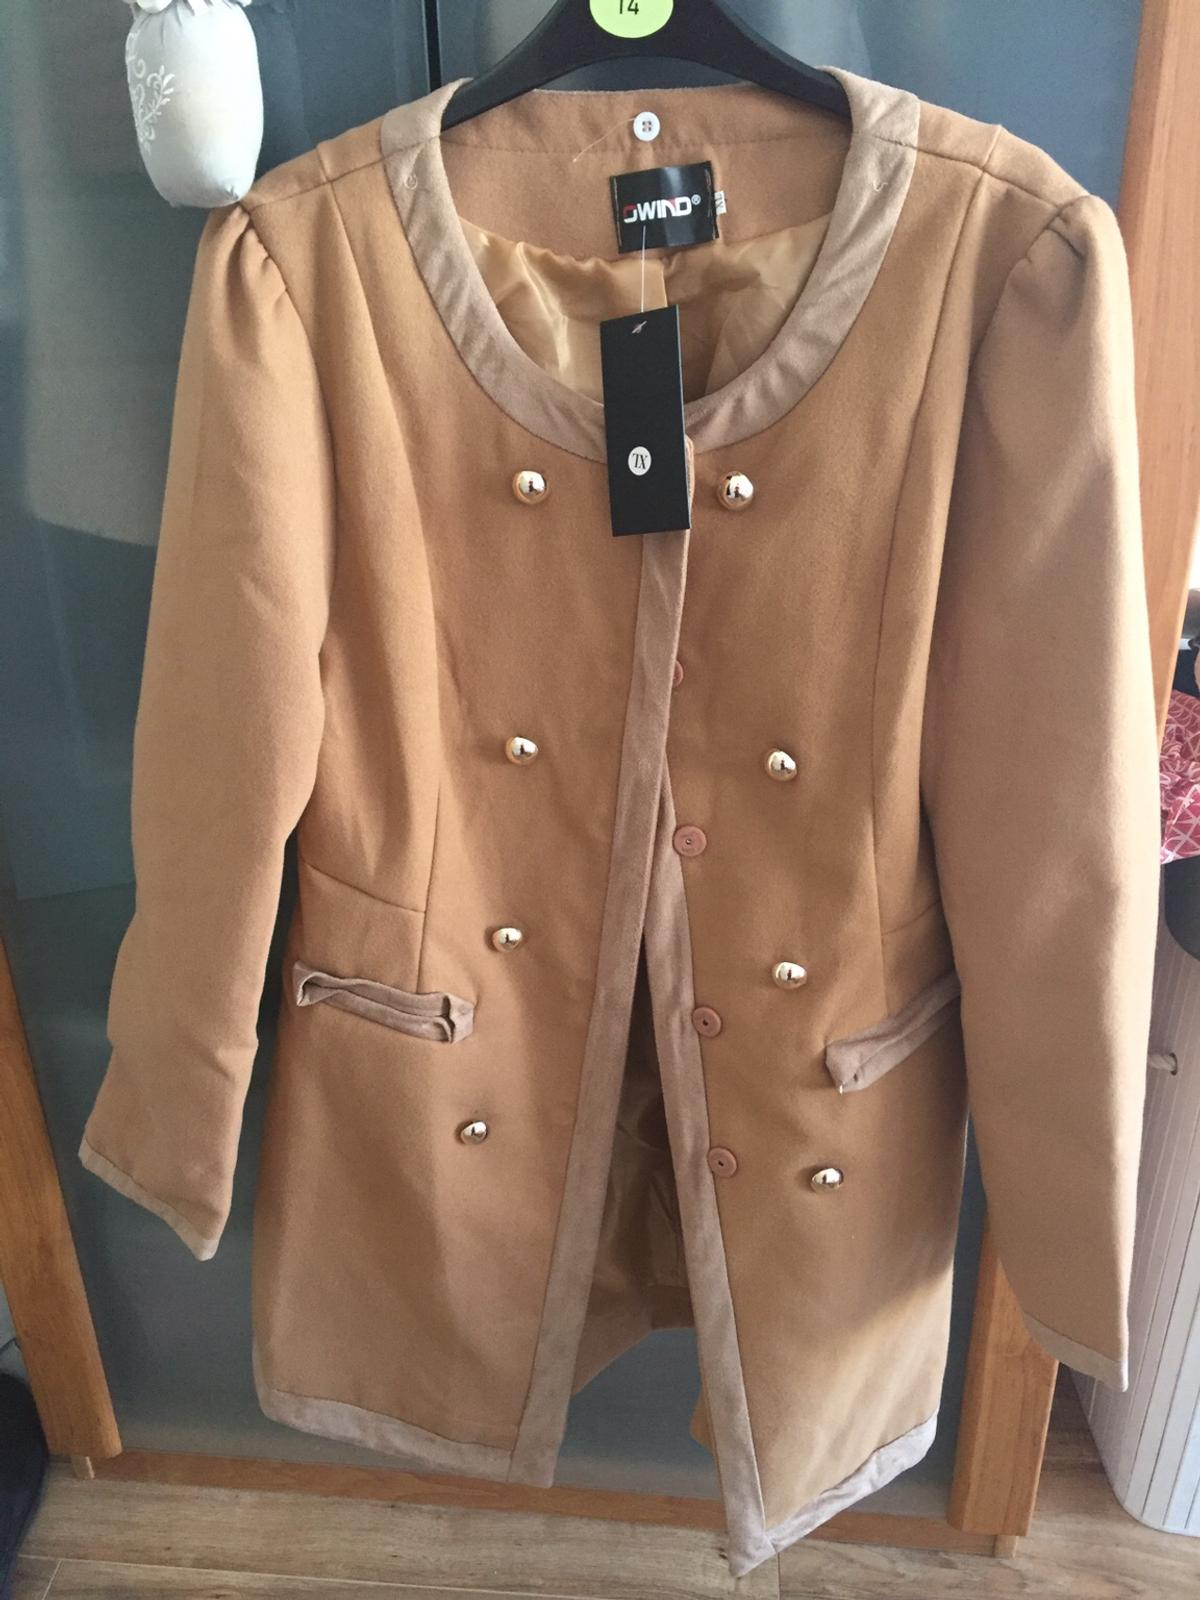 Women's Faux Fur Wool Blend Trench Coat Fashion Jackets, camel colour, New. Size XL on the label but I will say it's more L